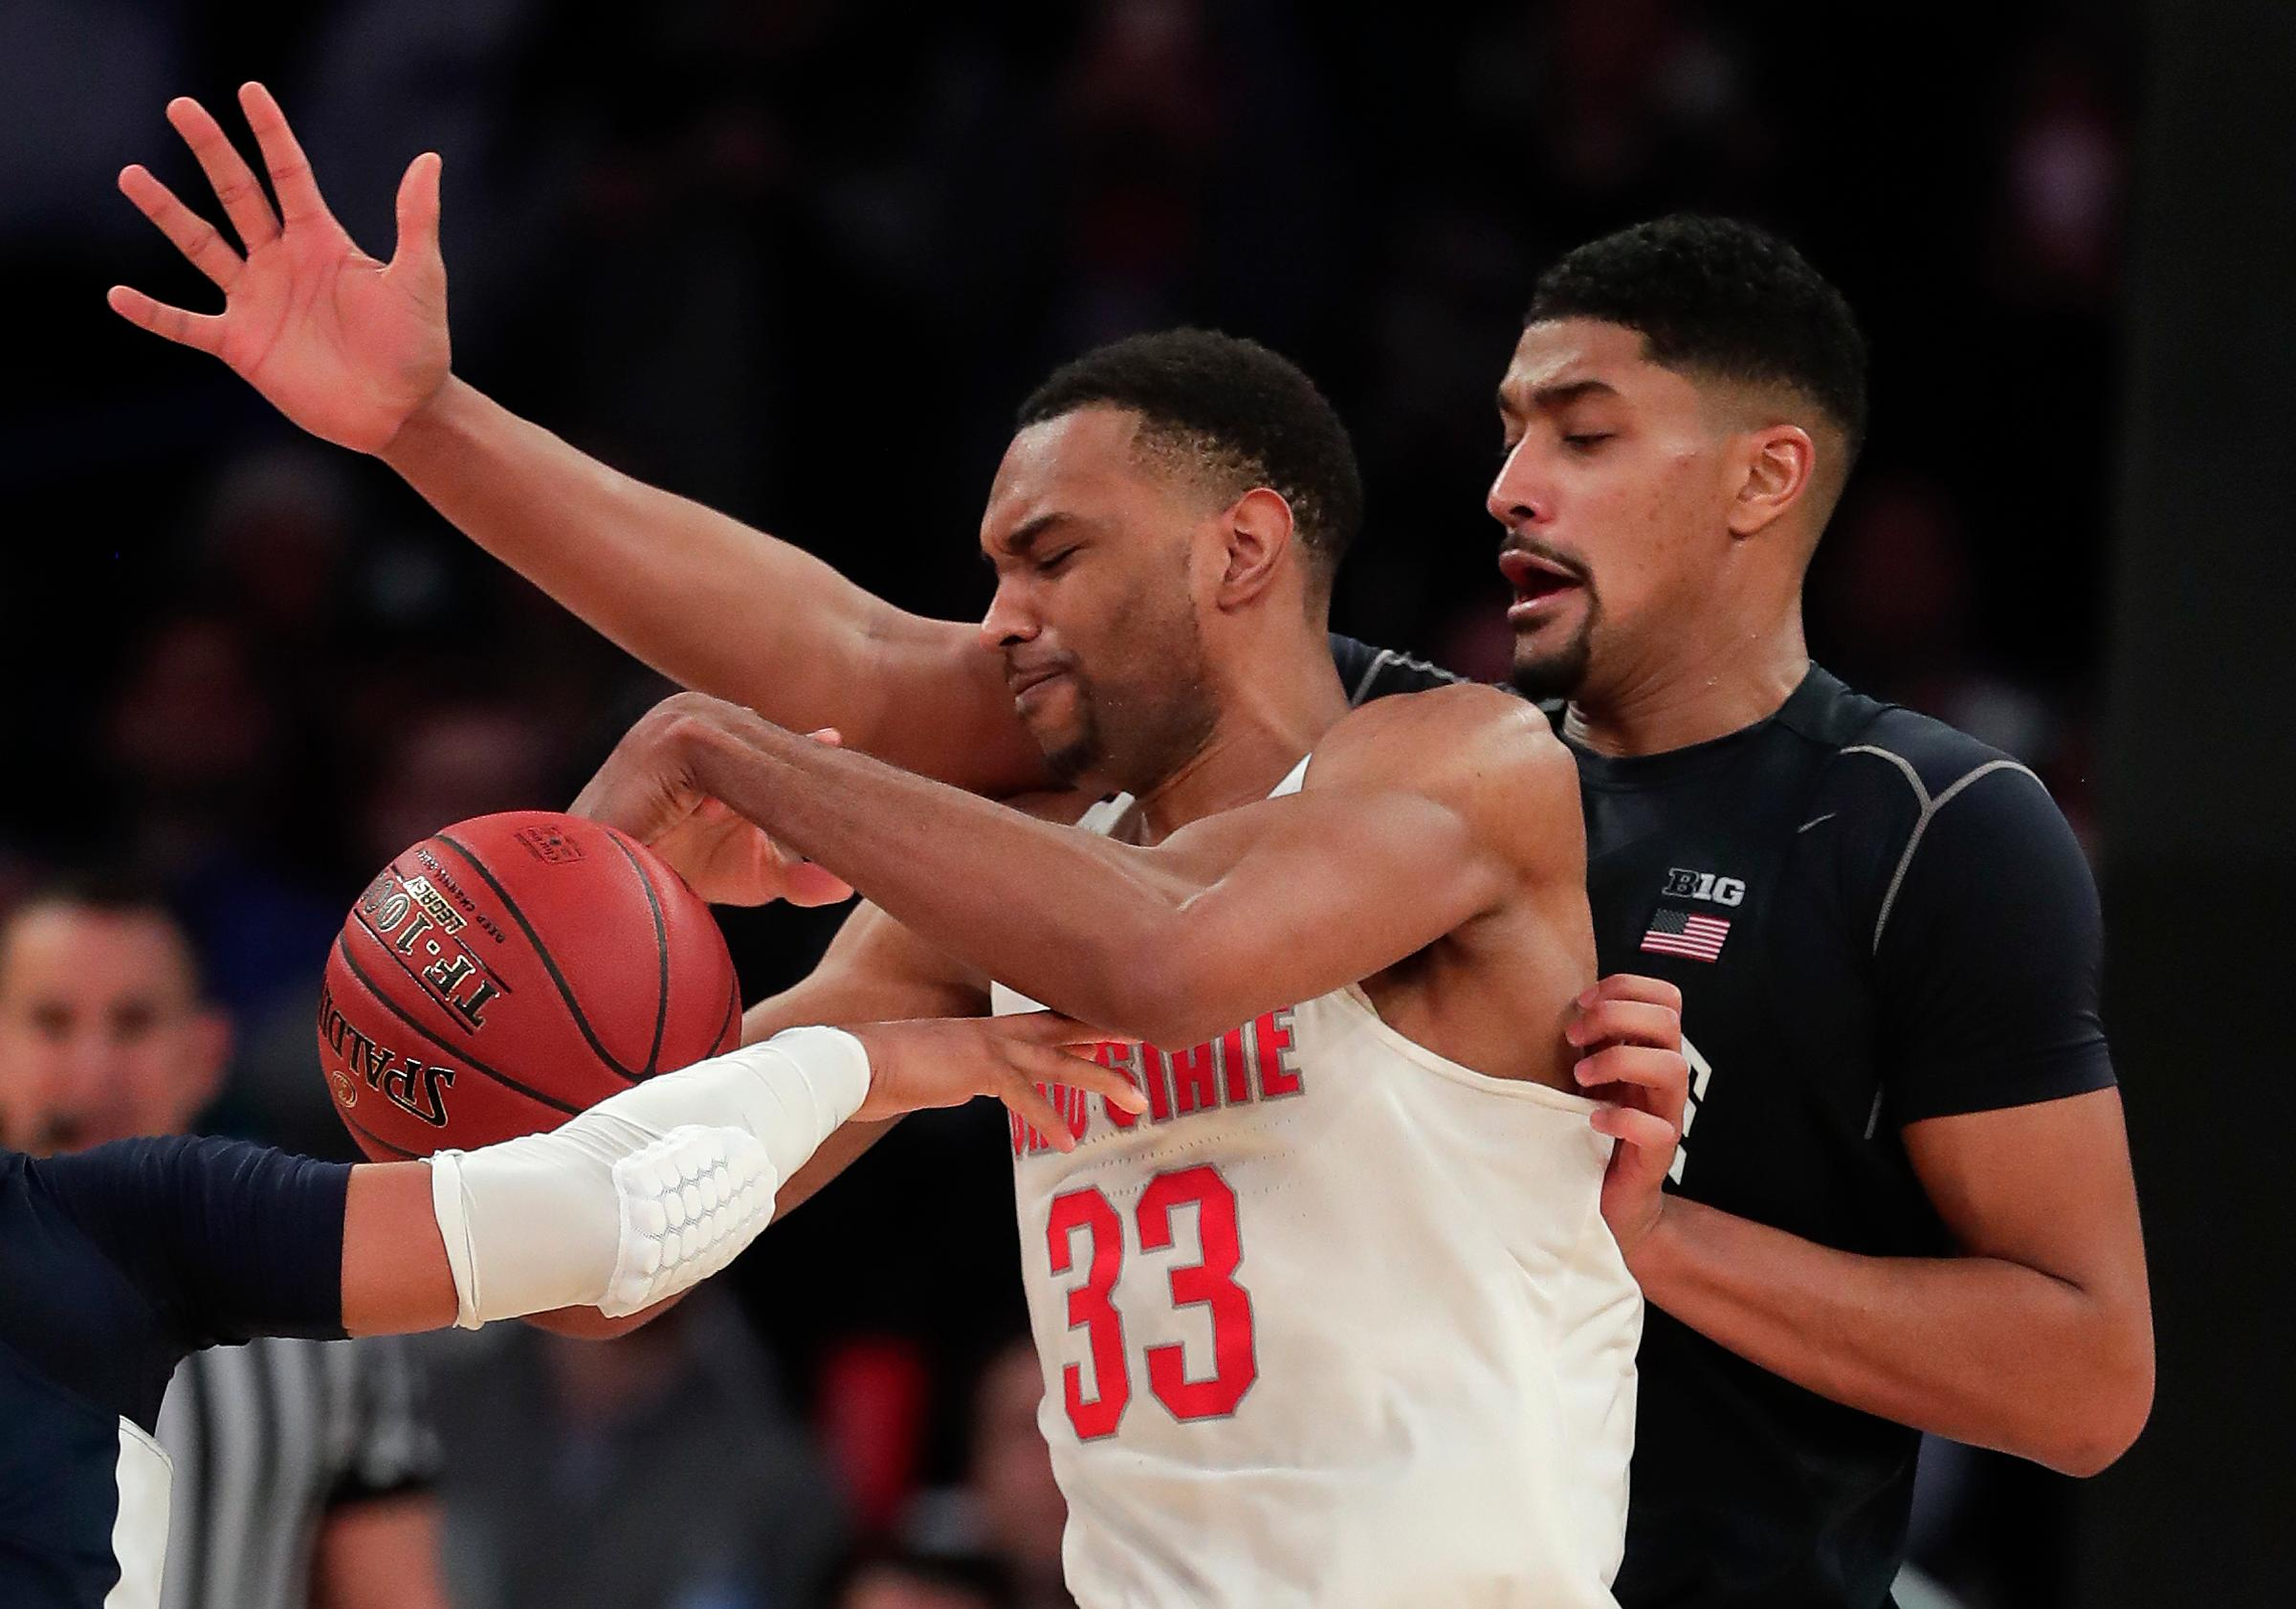 Ohio State forward Keita Bates-Diop (33) is stripped of the ball as he drives against Penn State forward Julian Moore (44) during the second half of an NCAA Big Ten Conference tournament college basketball game, Friday, March 2, 2018, in New York. Penn State won 69-68. (AP Photo/Julie Jacobson)